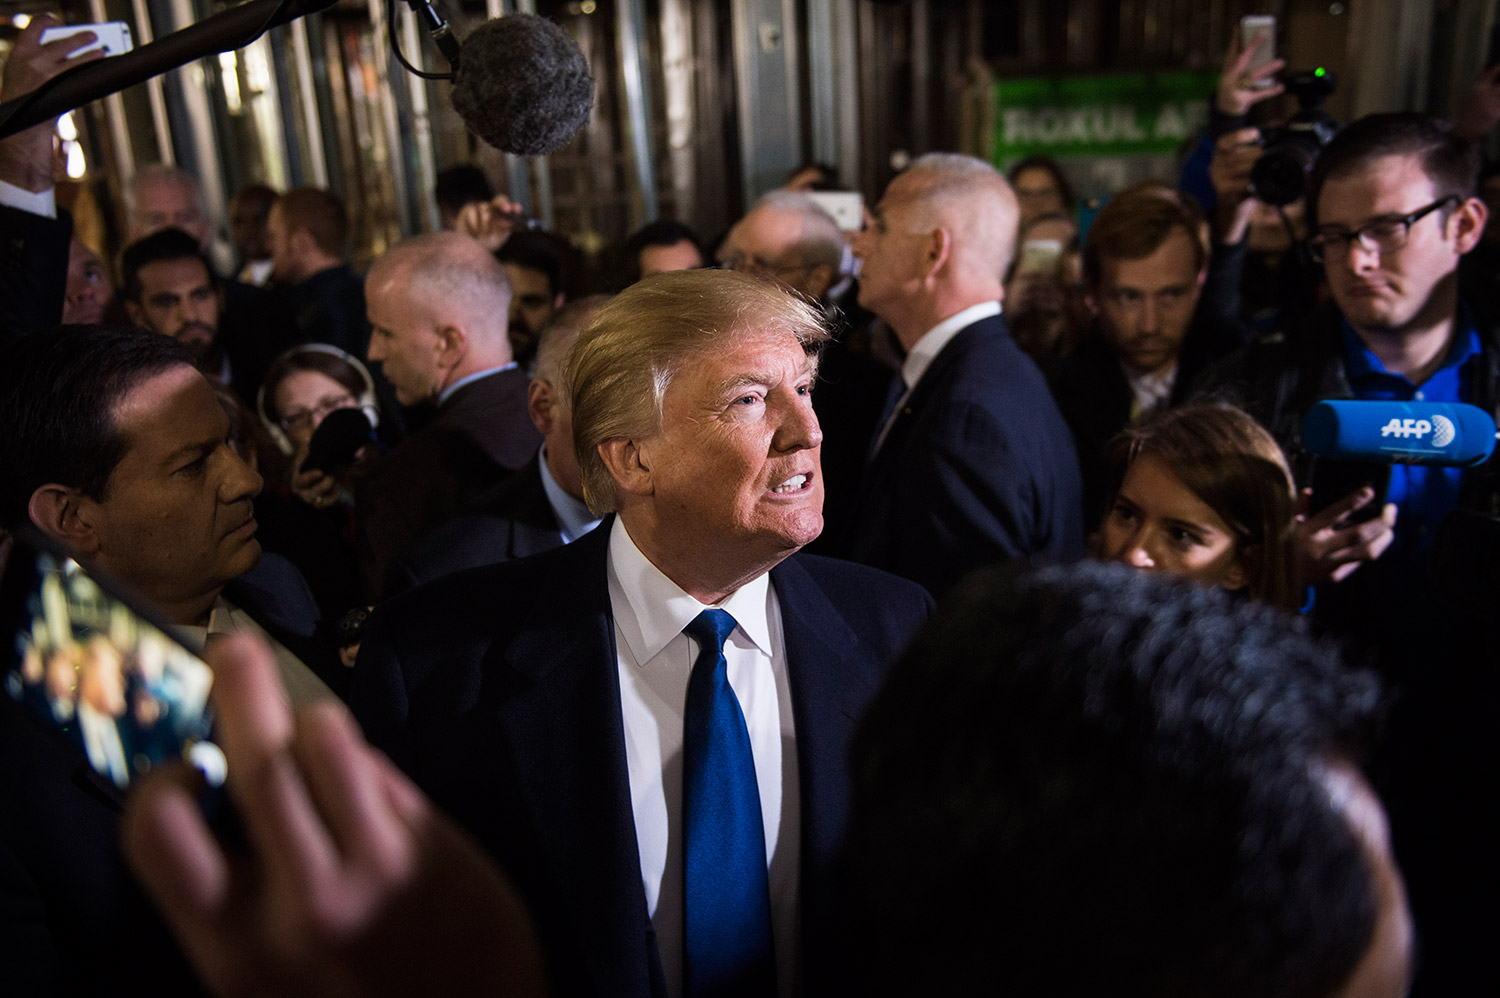 Donald Trump leads reporters on a tour after a news conference at the Old Post Office Pavilion, soon to be a Trump International Hotel, in Washington on March 21.